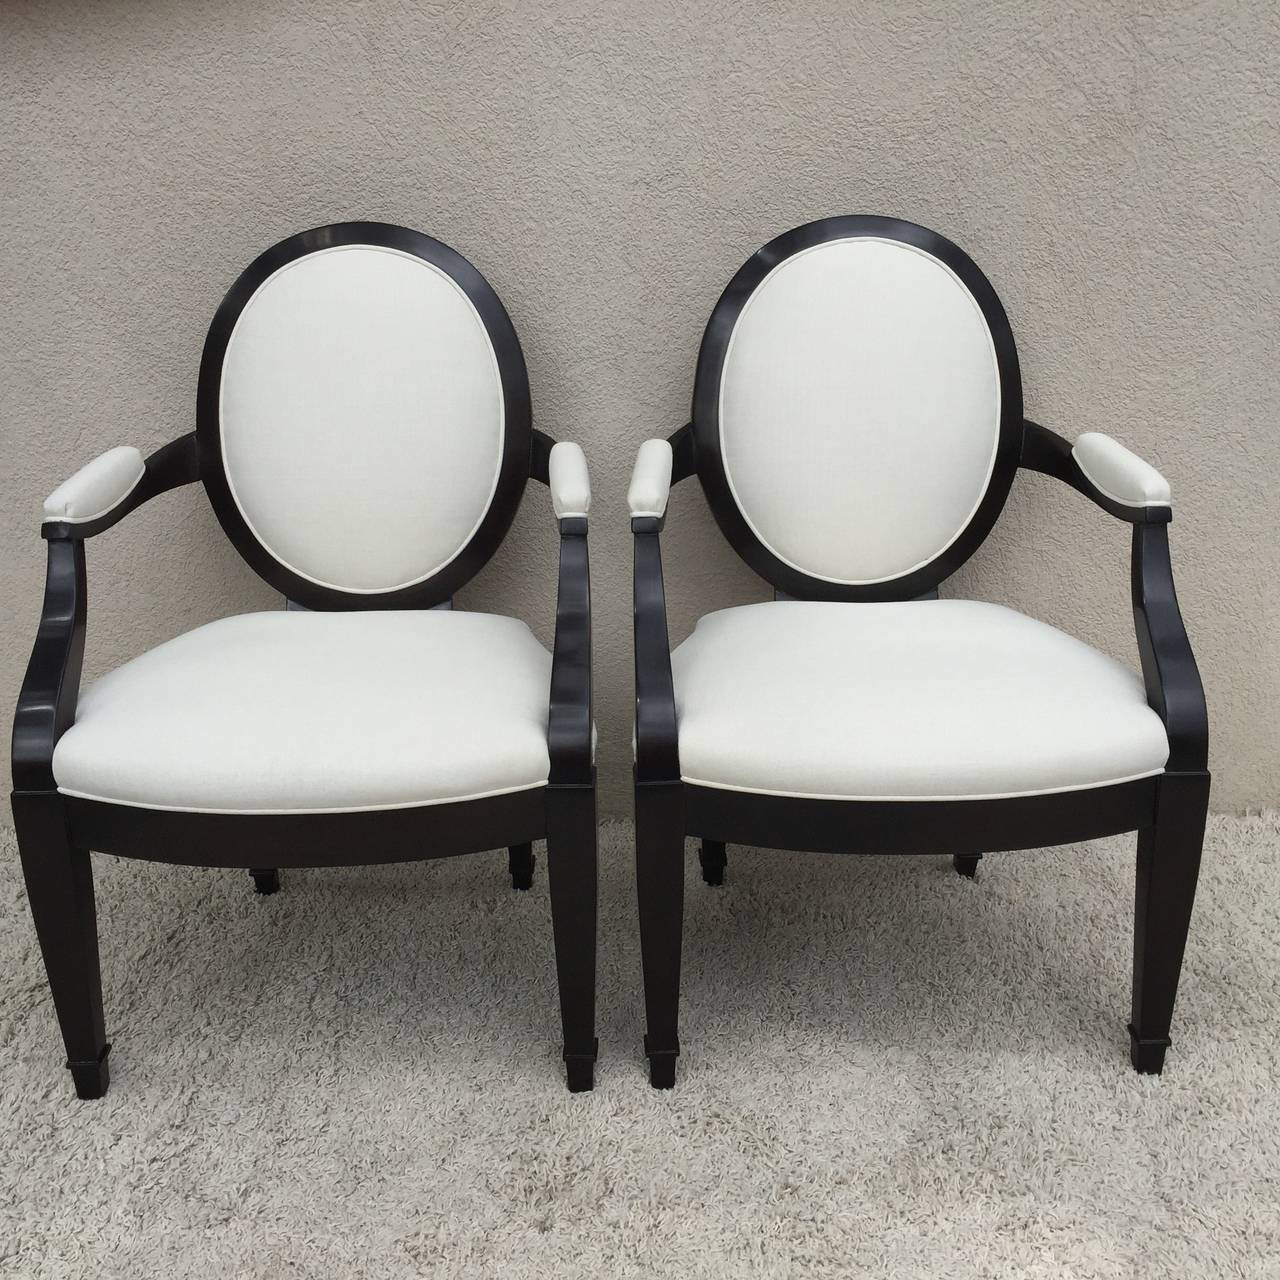 john hutton for donghia set of six chairs for sale at 1stdibs rh 1stdibs com donghia lounge chairs donghia lounge chairs